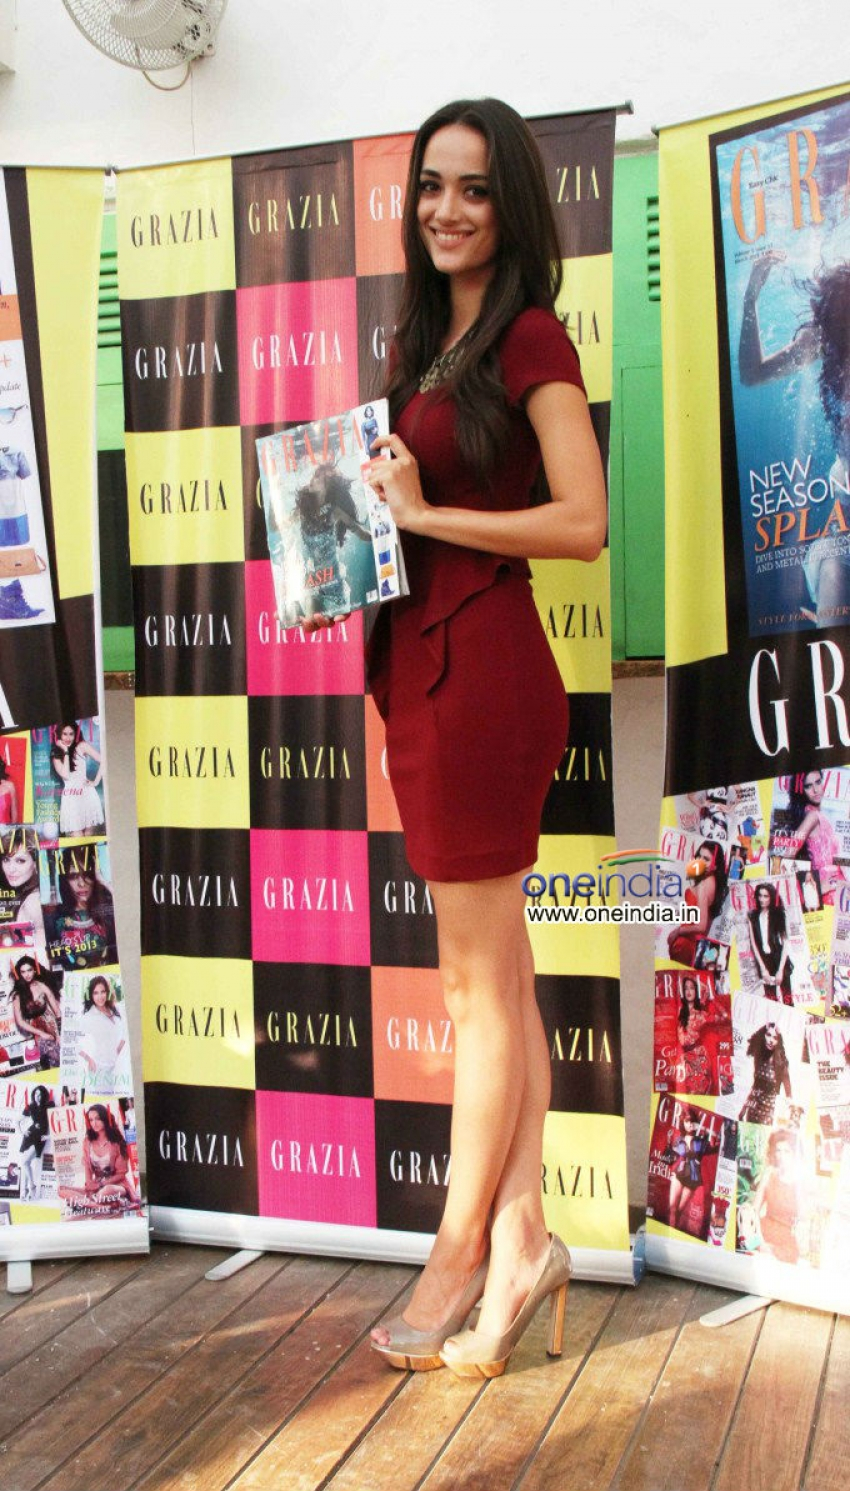 Grazia Magazine Shoots Its First Underwater Cover Photos